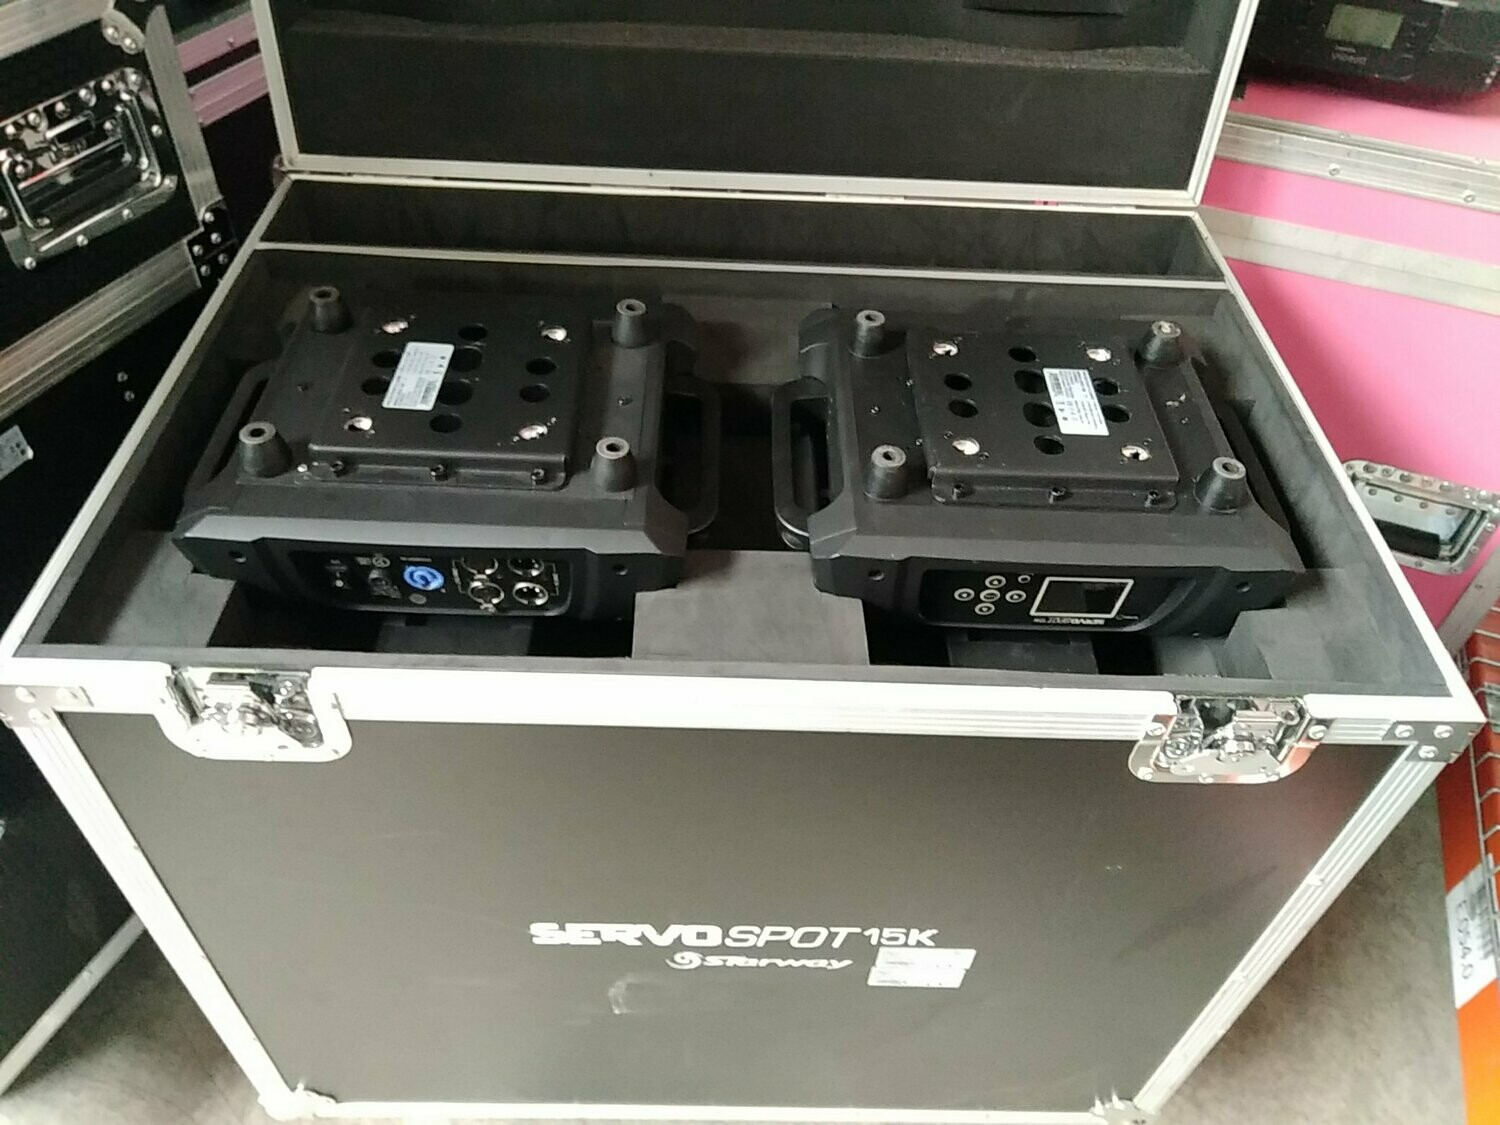 2 Servo Spot 15K en flight-case